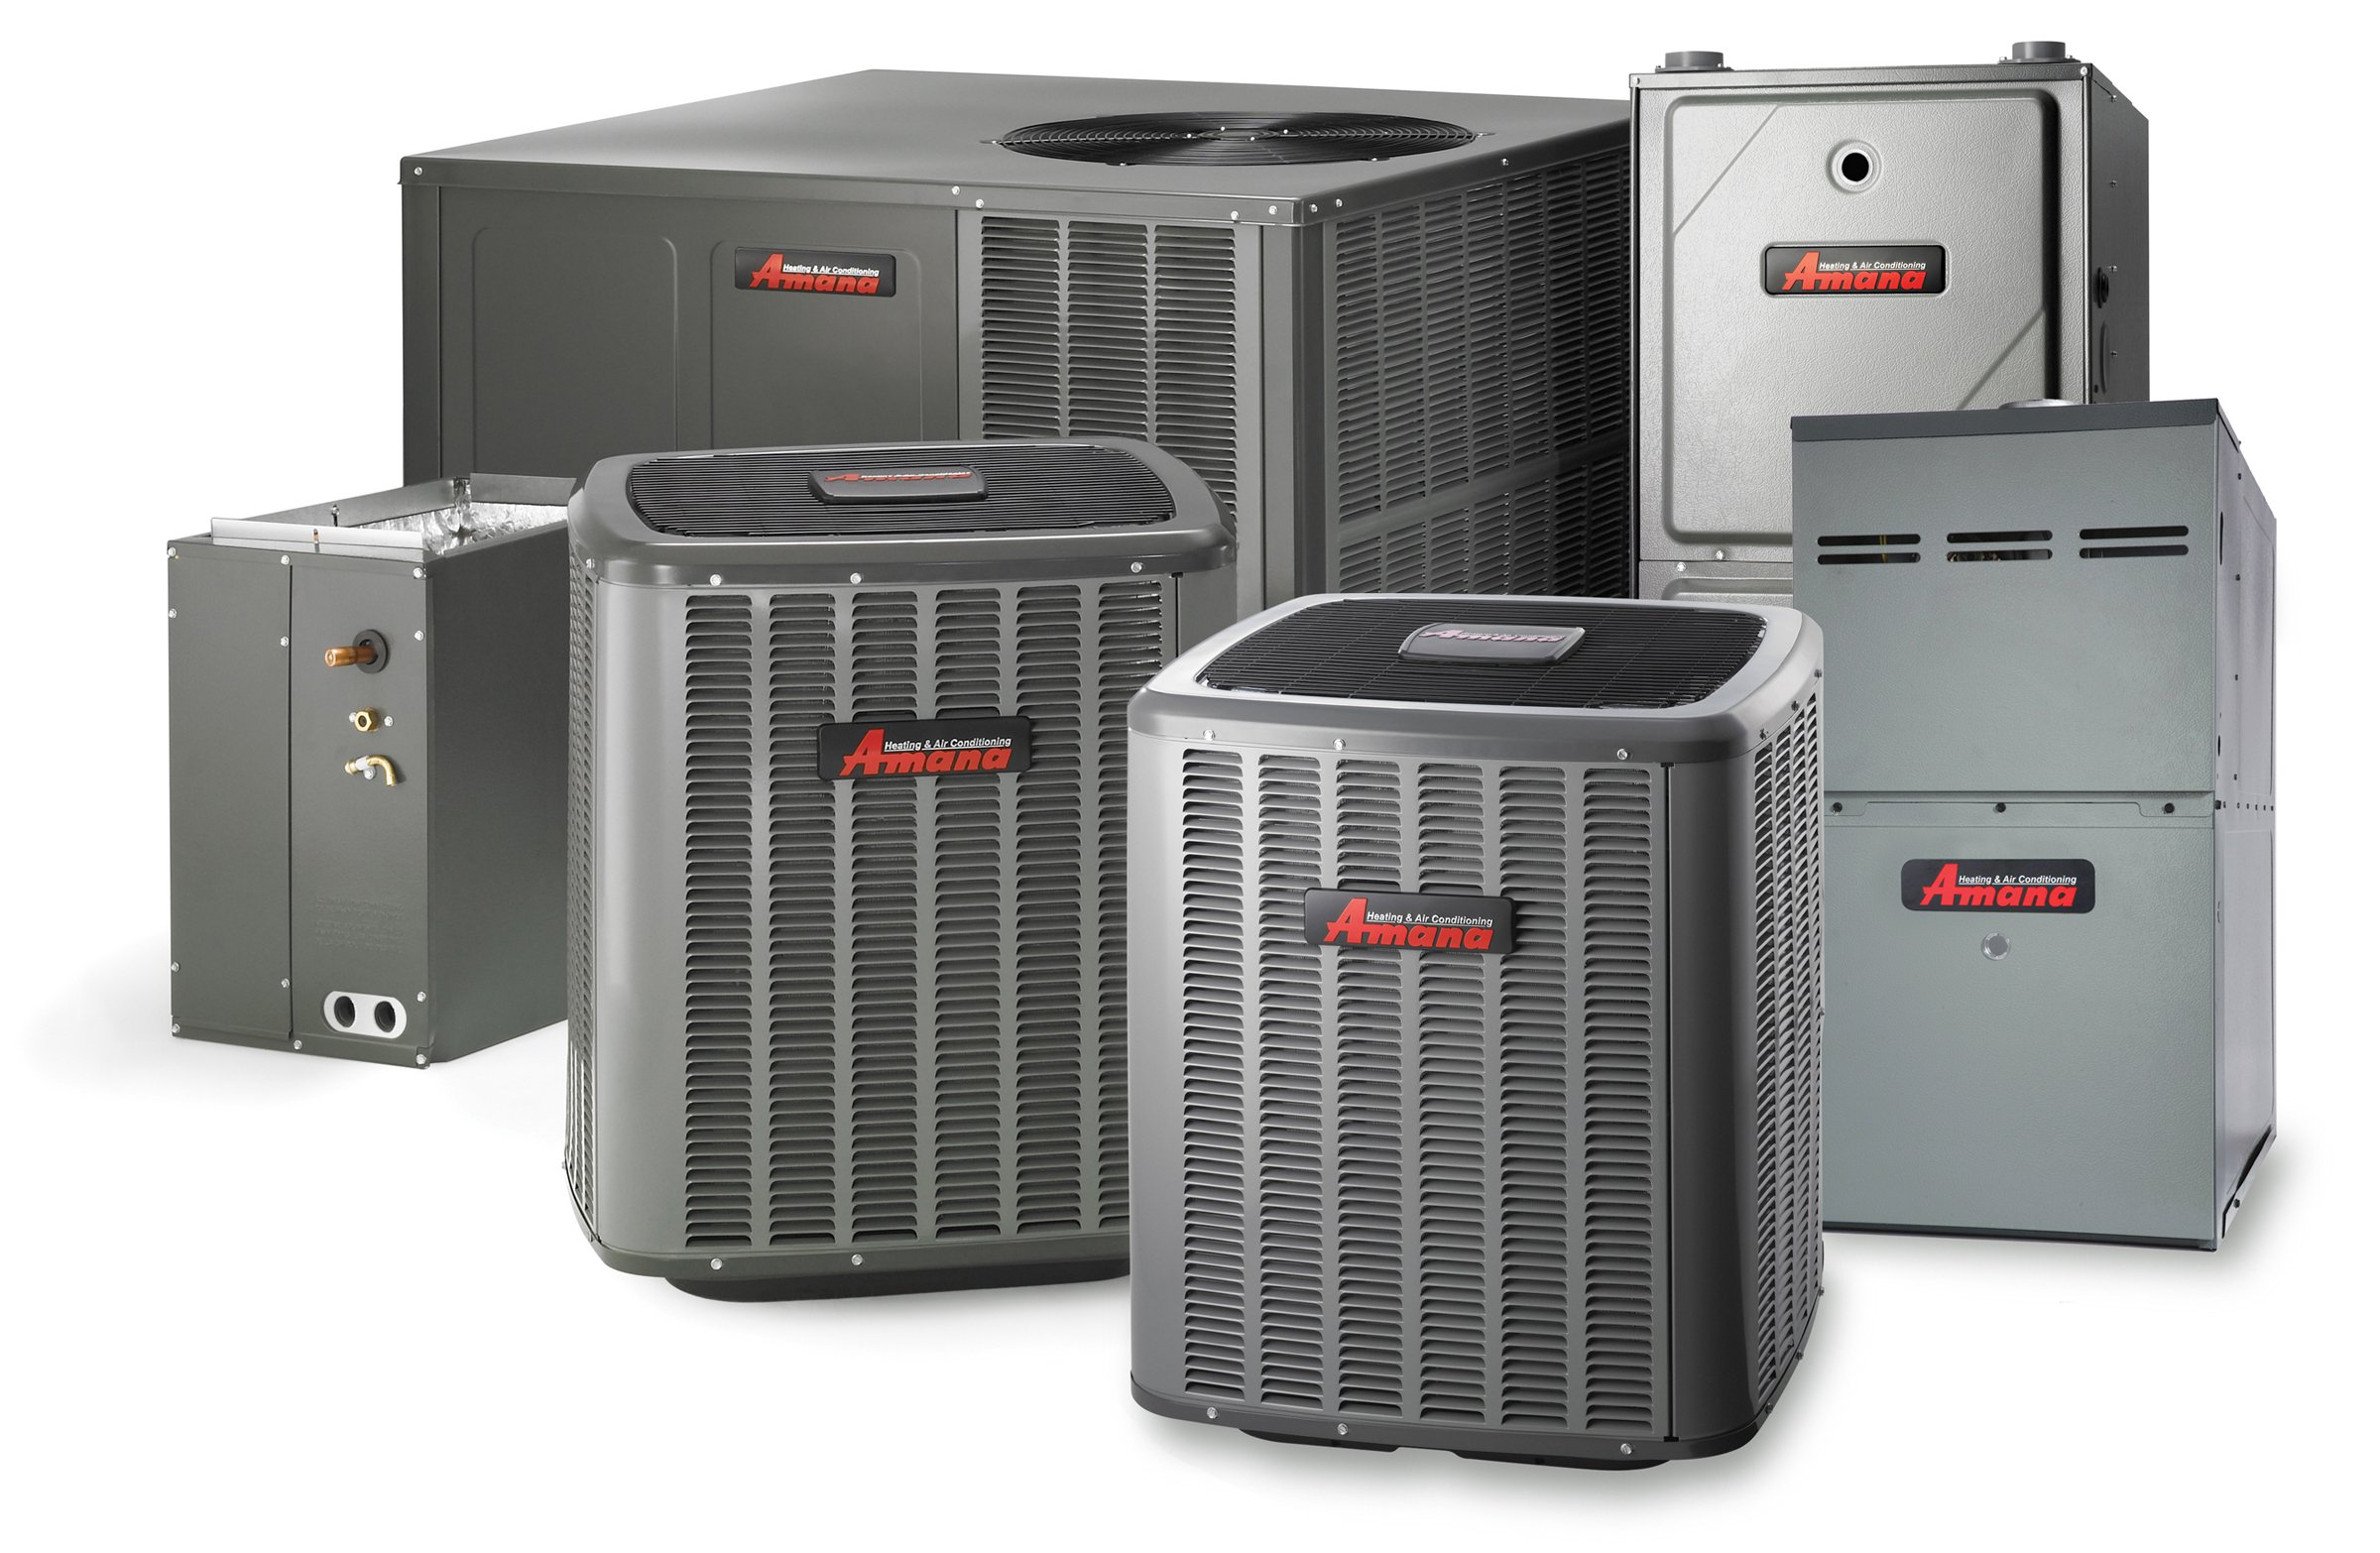 Luxaire Air Conditioner Reviews Zef Jam